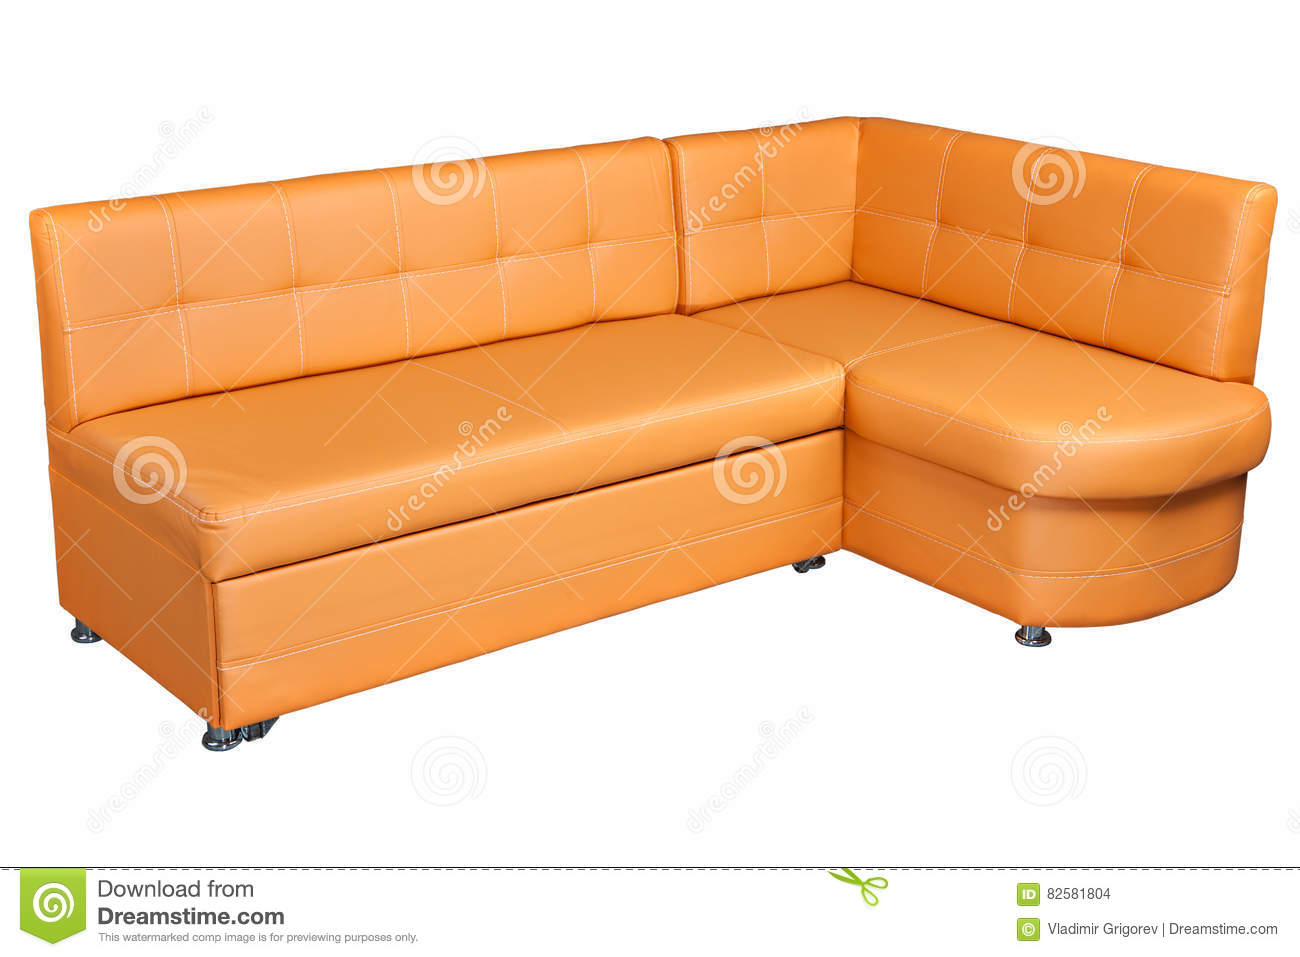 Dinner Sofa Light Brown Sectional Imitation Leather Corner Sofa Couch Dinner